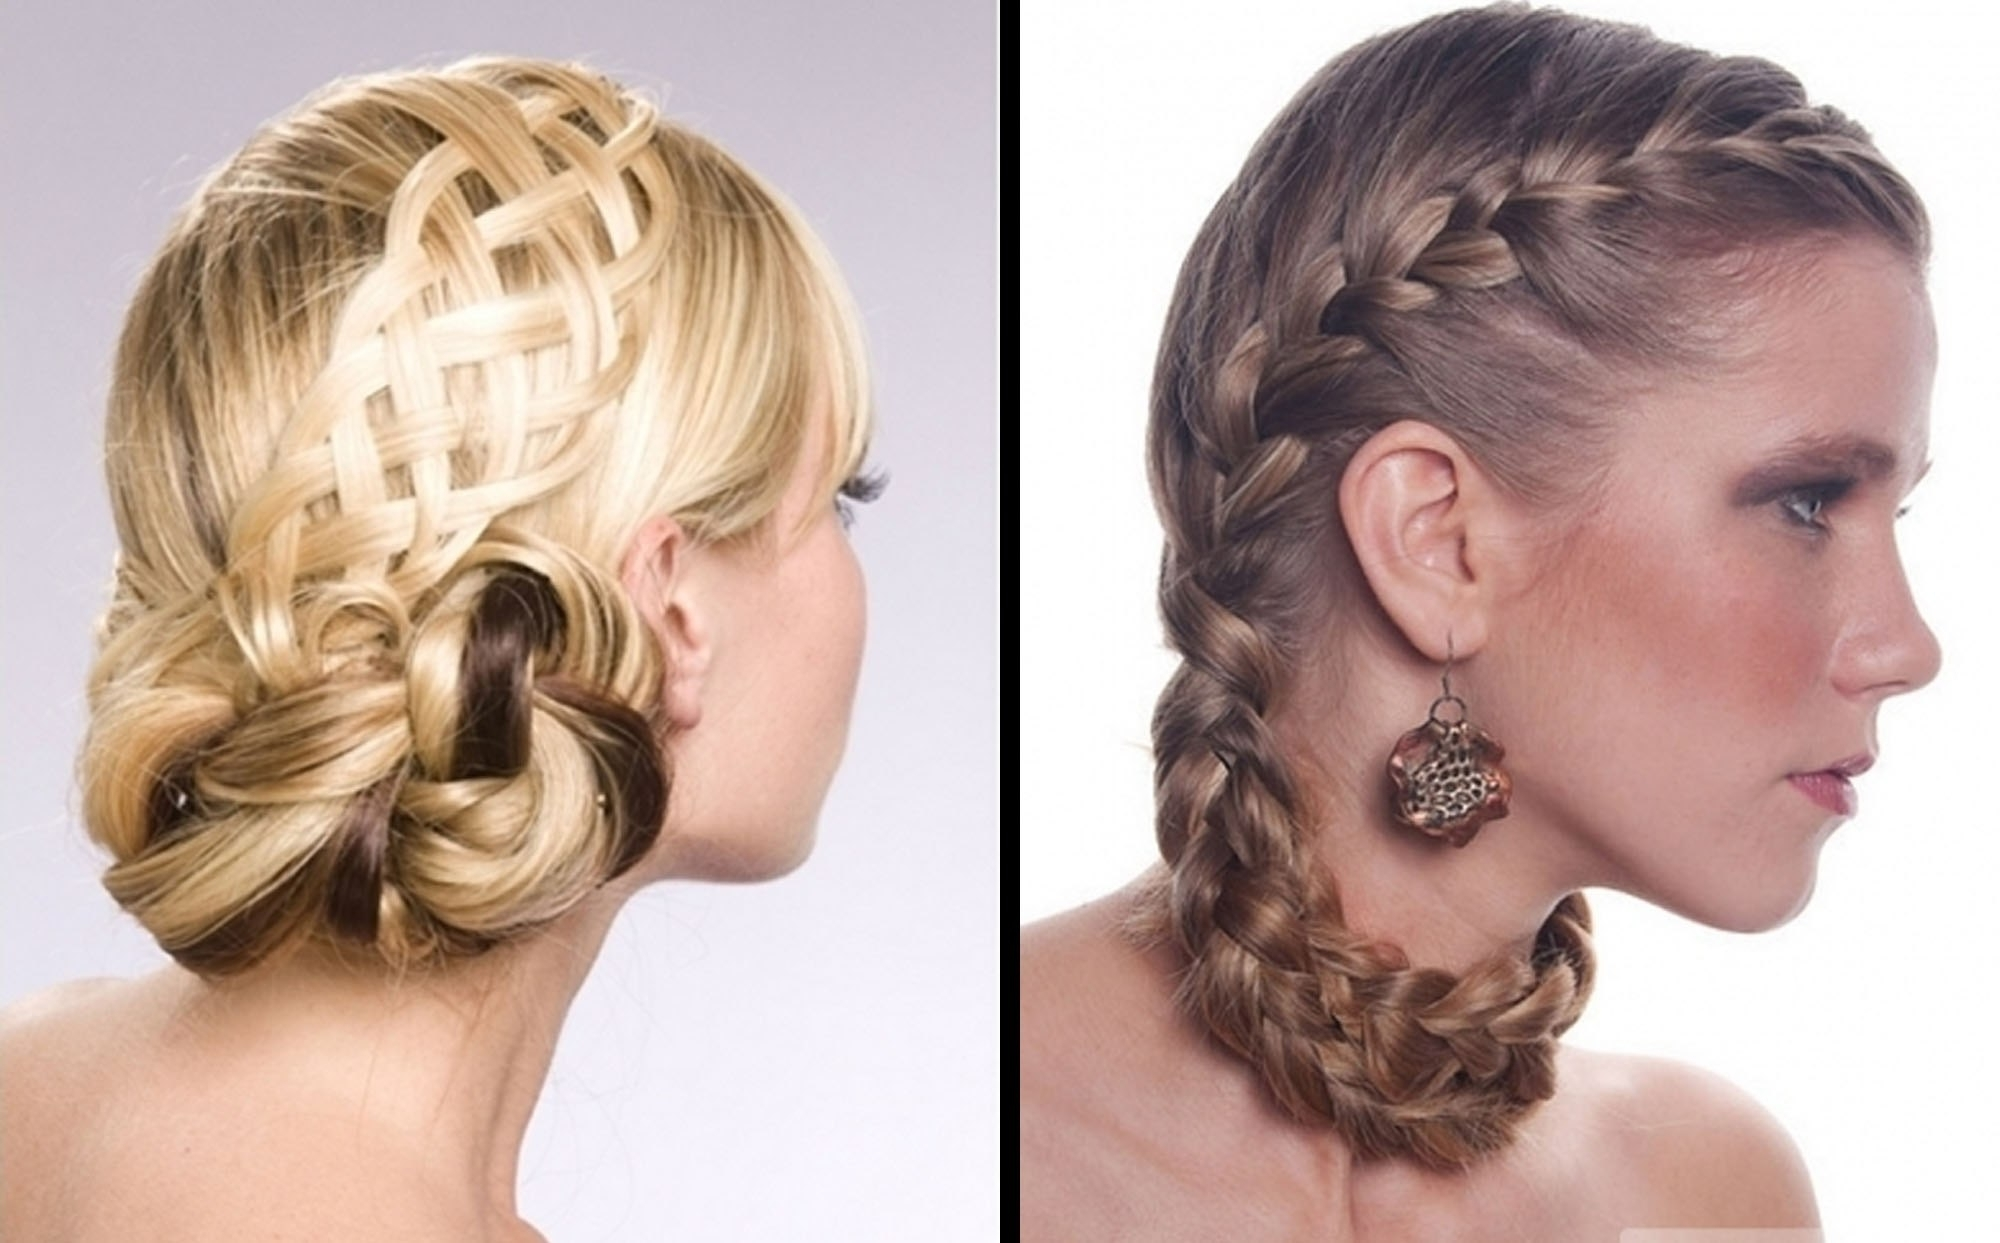 Hairstyles Prom For Short Hair Easy | Medium Hair Styles Ideas – 35491 In Simple Hair Updo Hairstyles (View 12 of 15)